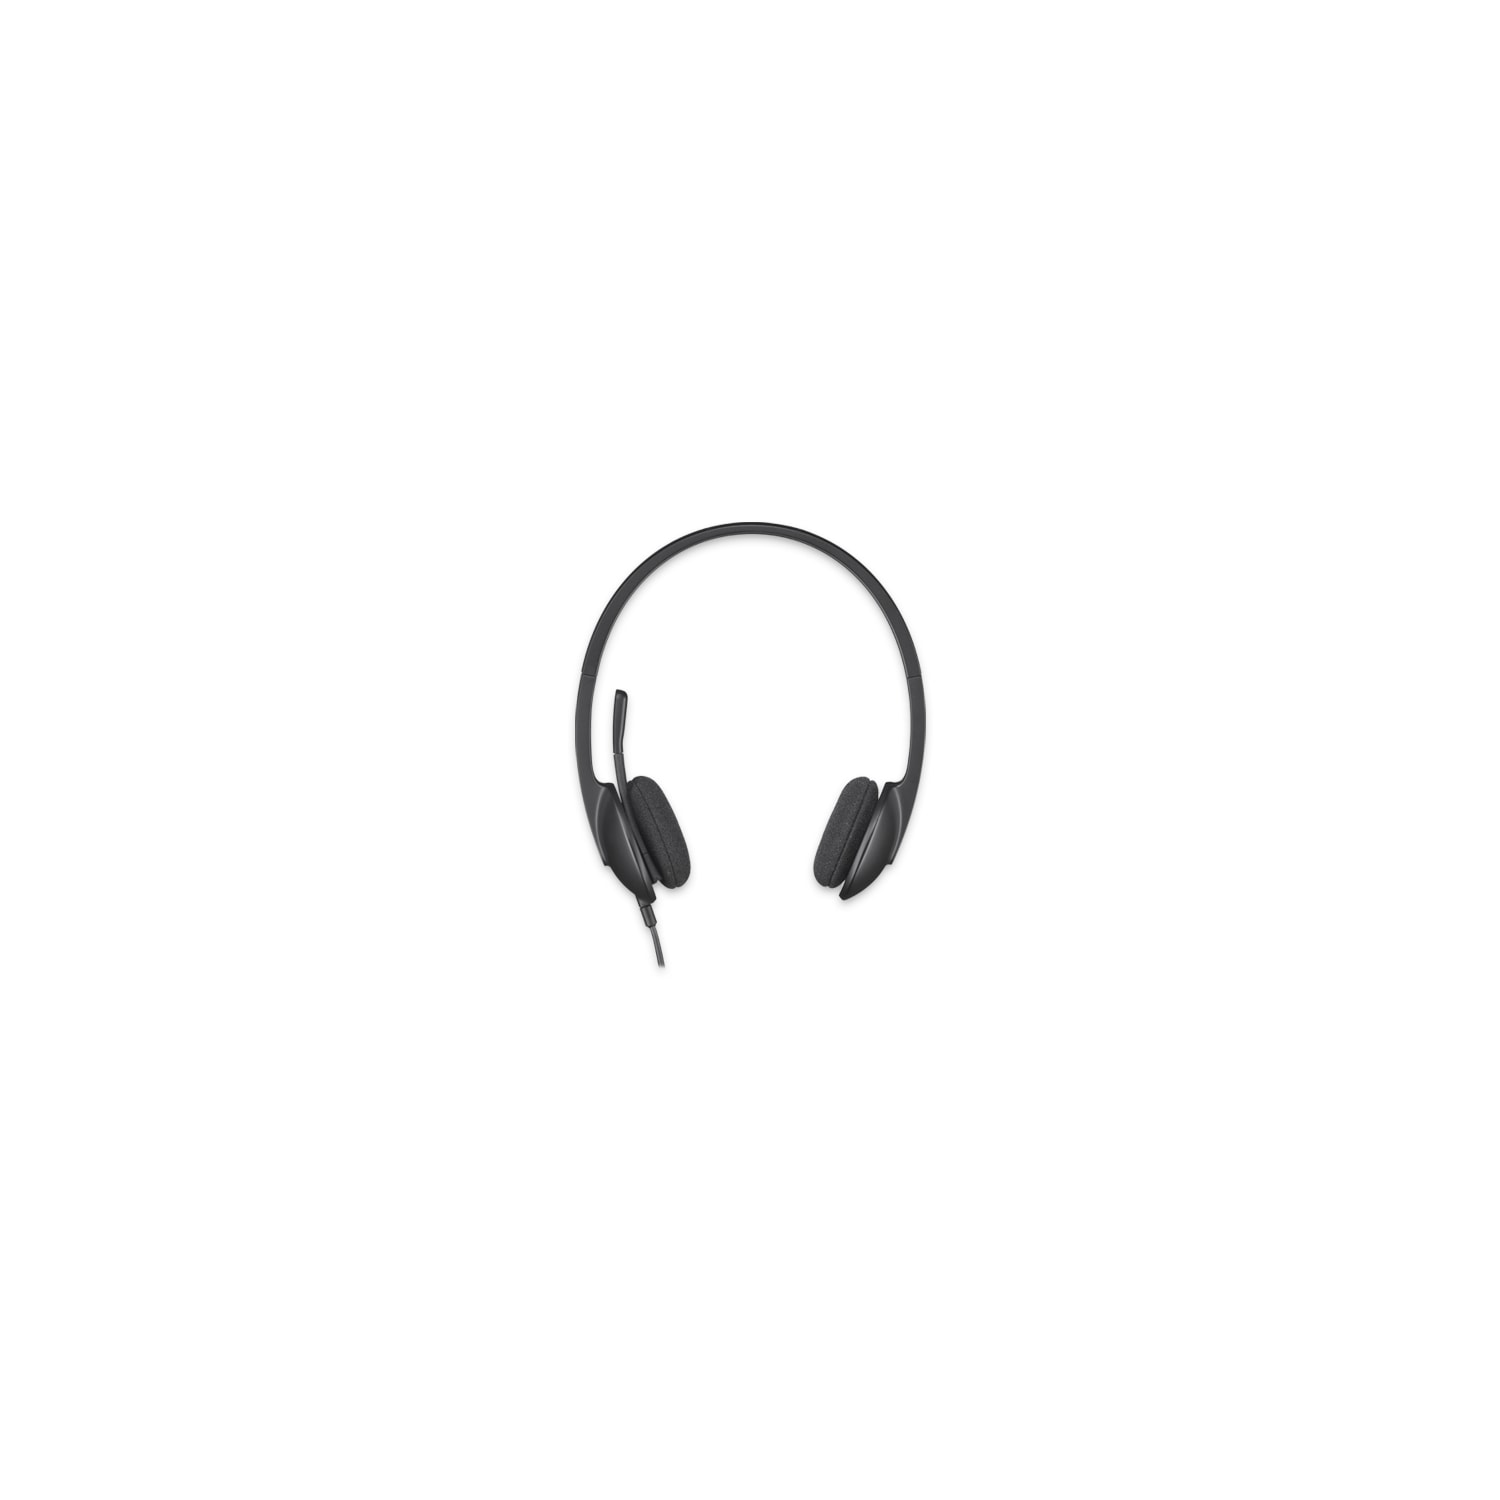 80b1669e295 Buy Logitech H340 Wired Stereo Headset - Over-the-head - Semi-open ...